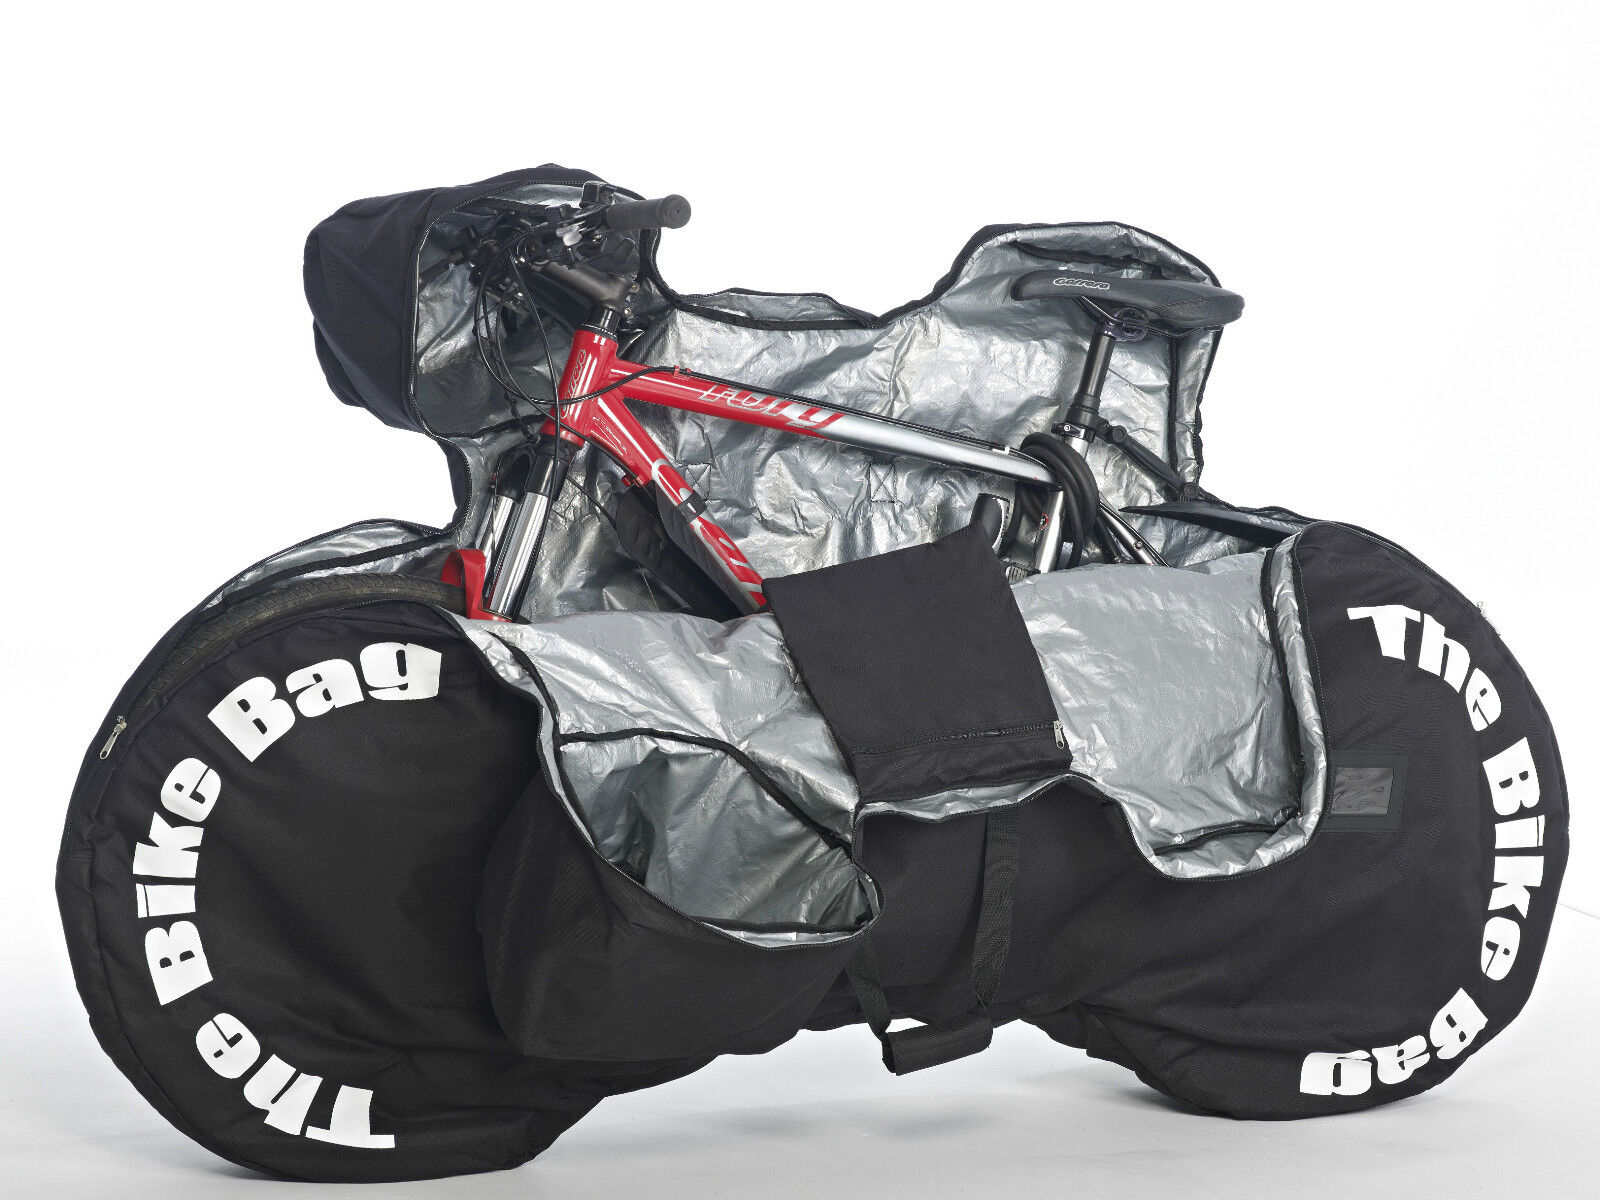 NEW Fantastic  LARGE  Padded Bike Bag - Fits a Mountain Bike  affordable